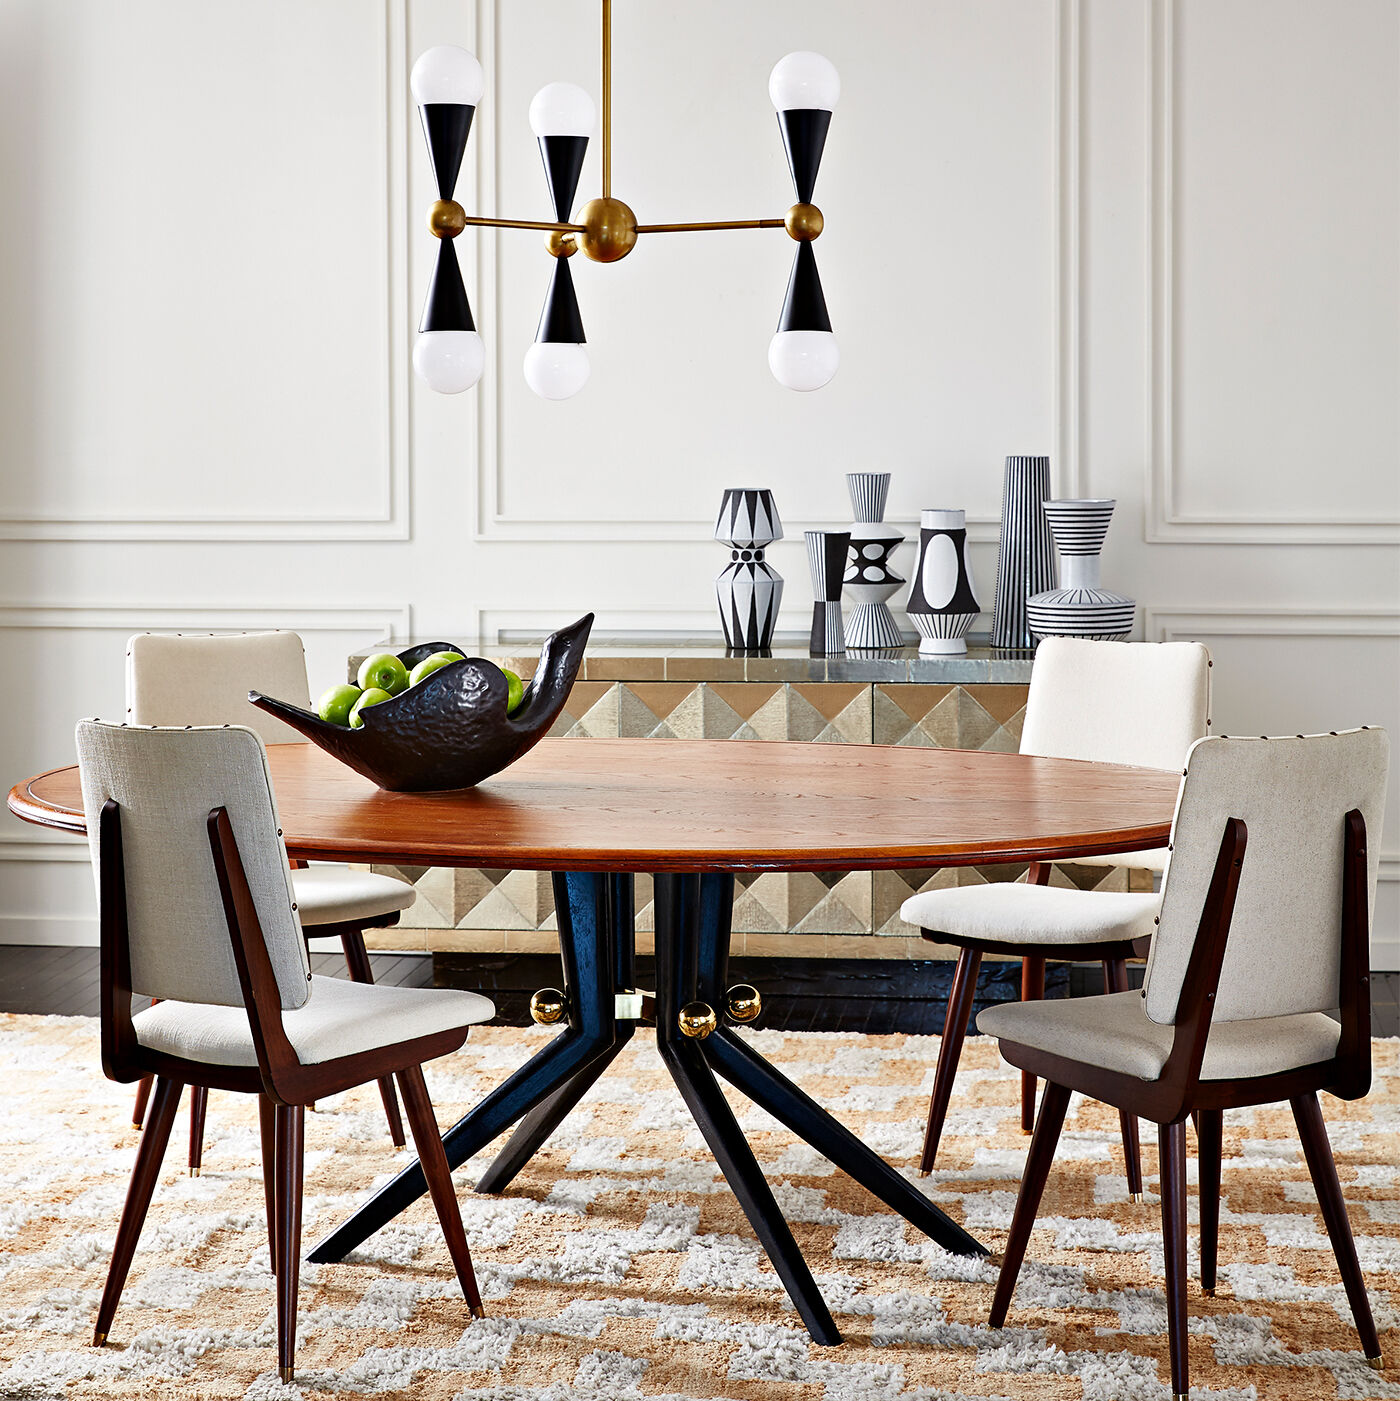 Dining Tables   Trocadero Wood Dining Table ...